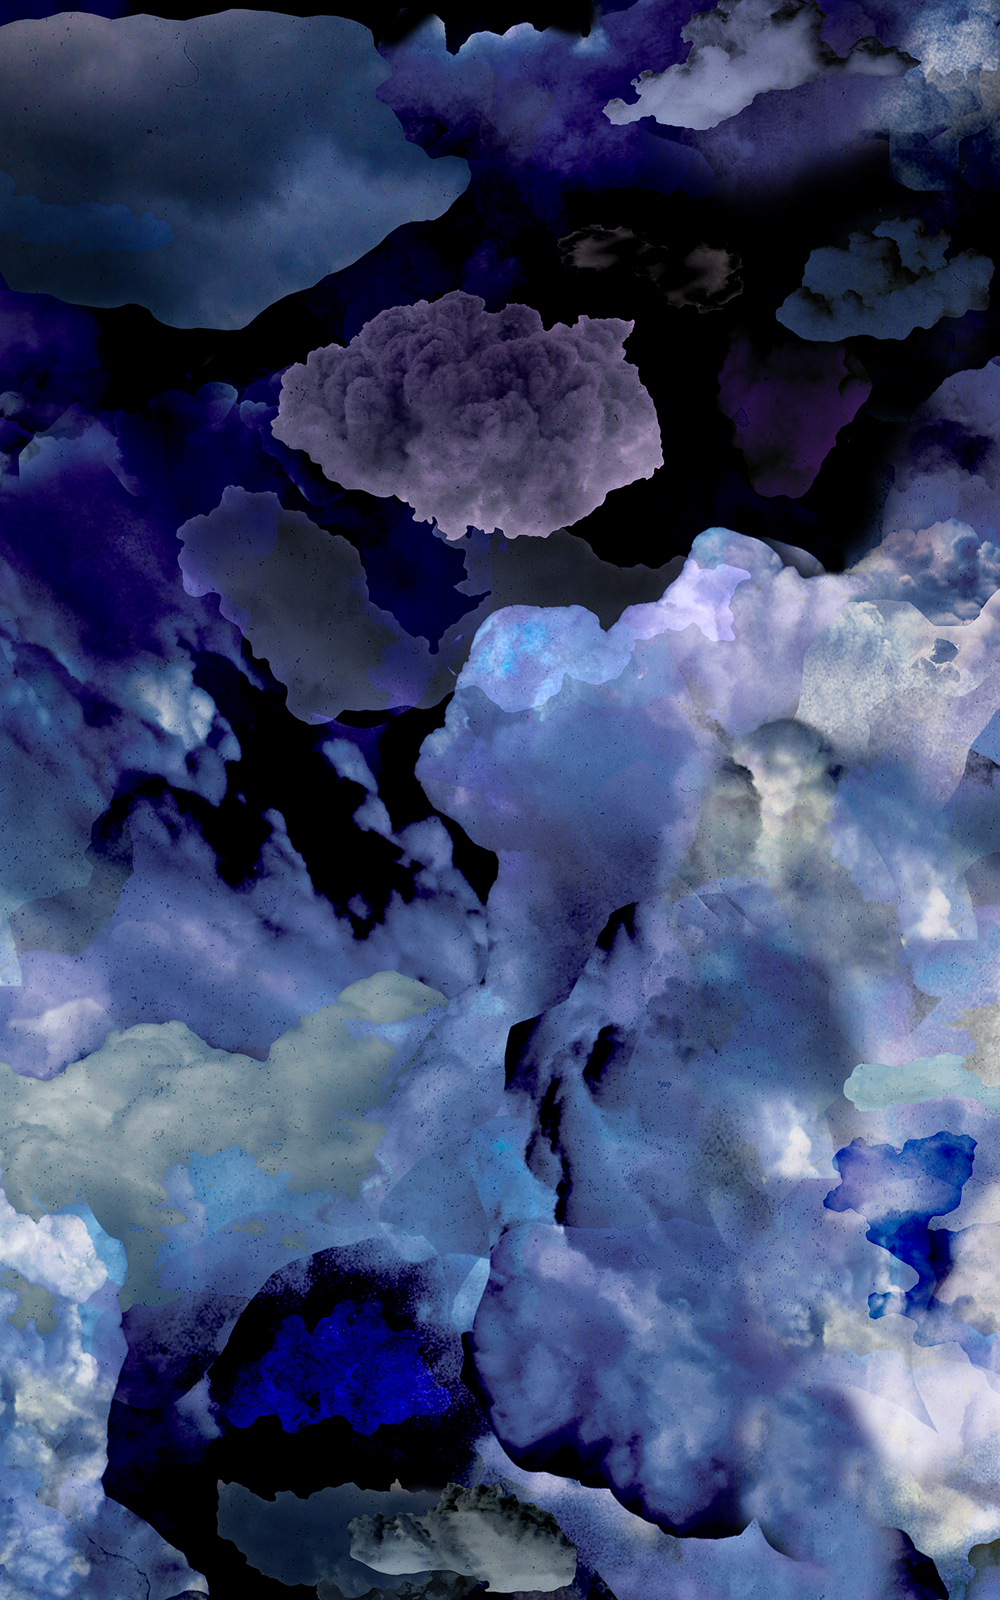 Case Simmons, Simmons & Burke, Clouds Wallpaper, Cloud Collage, Vinyl Wallpaper, Digital Collage, Digital Art, Photoshop Collage, Contemporary Collage, Case Simmons Art, Collage Fine Art, Fine Art Wallpaper, Abstract Digital Collage, Kohn Gallery, Bank of America Lobby